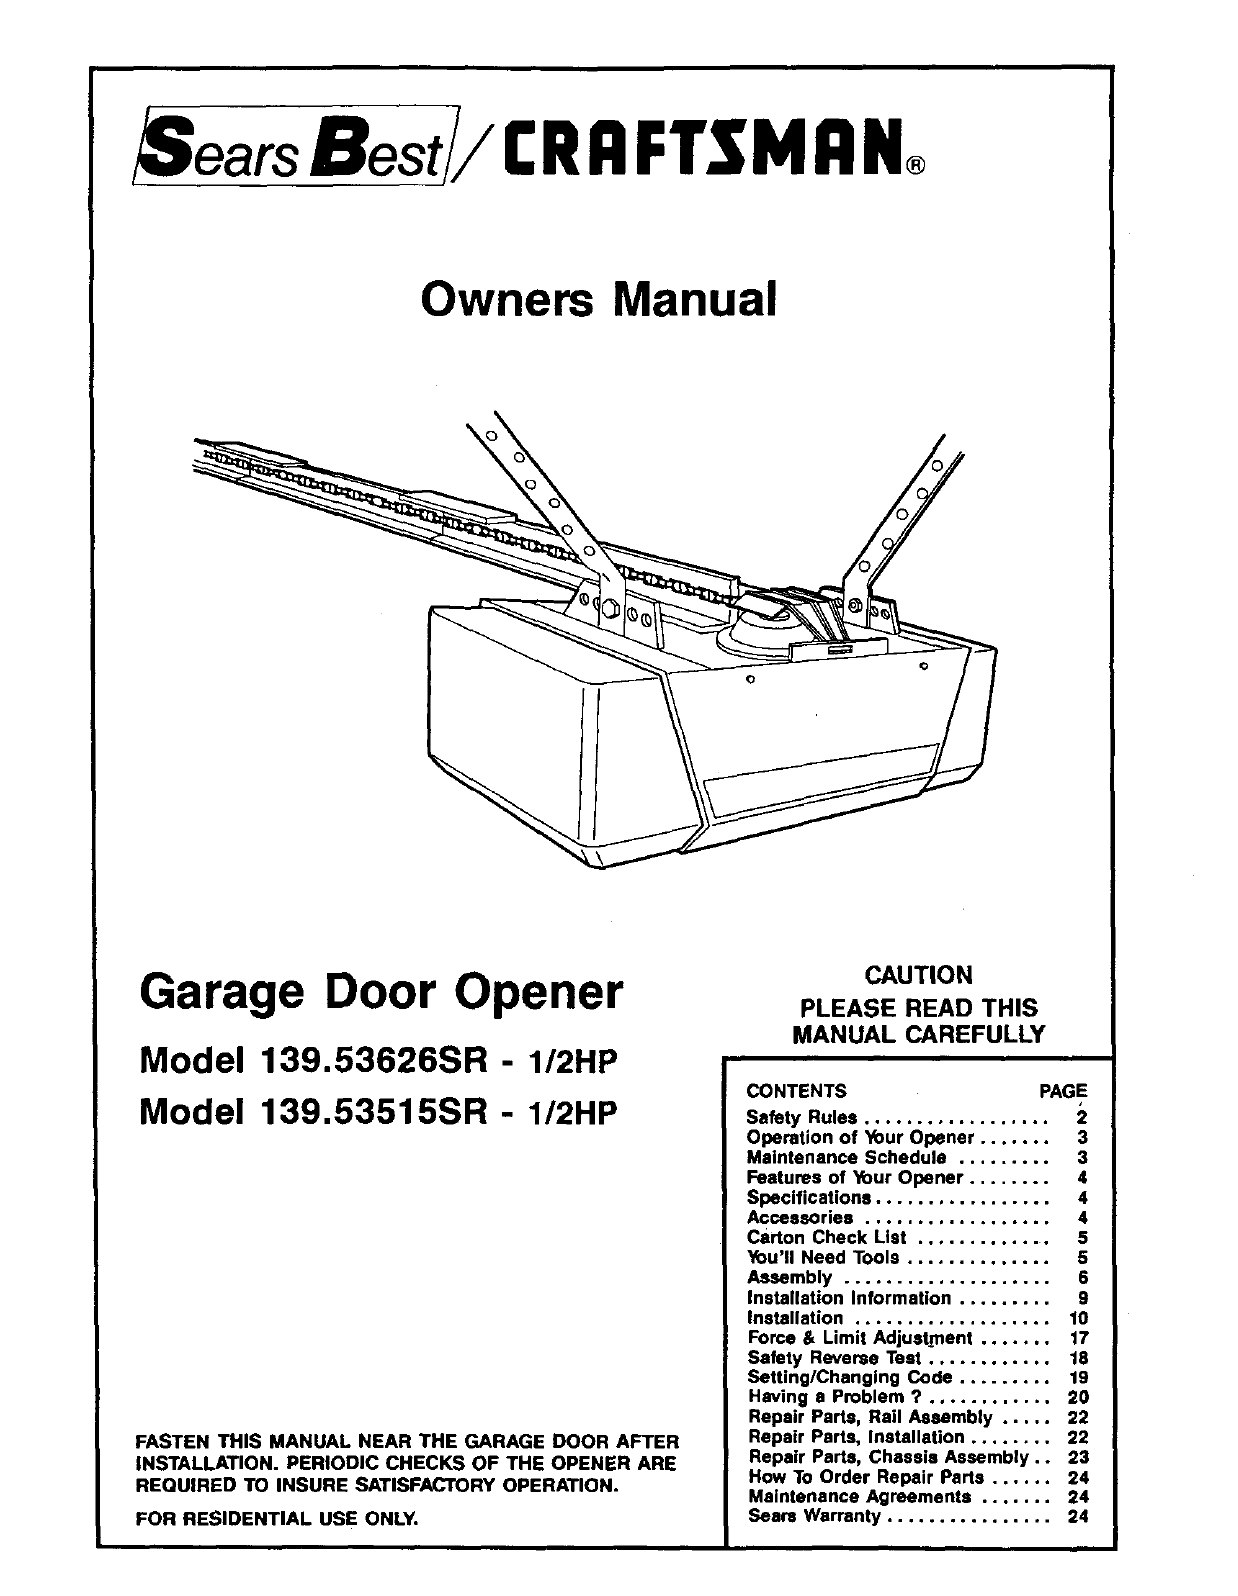 6e97bce9 7ab4 4d1d 9173 64e7868174d5 bg1 craftsman garage door opener 139 53515sr i 2hp user guide garage door opener wiring diagram at edmiracle.co